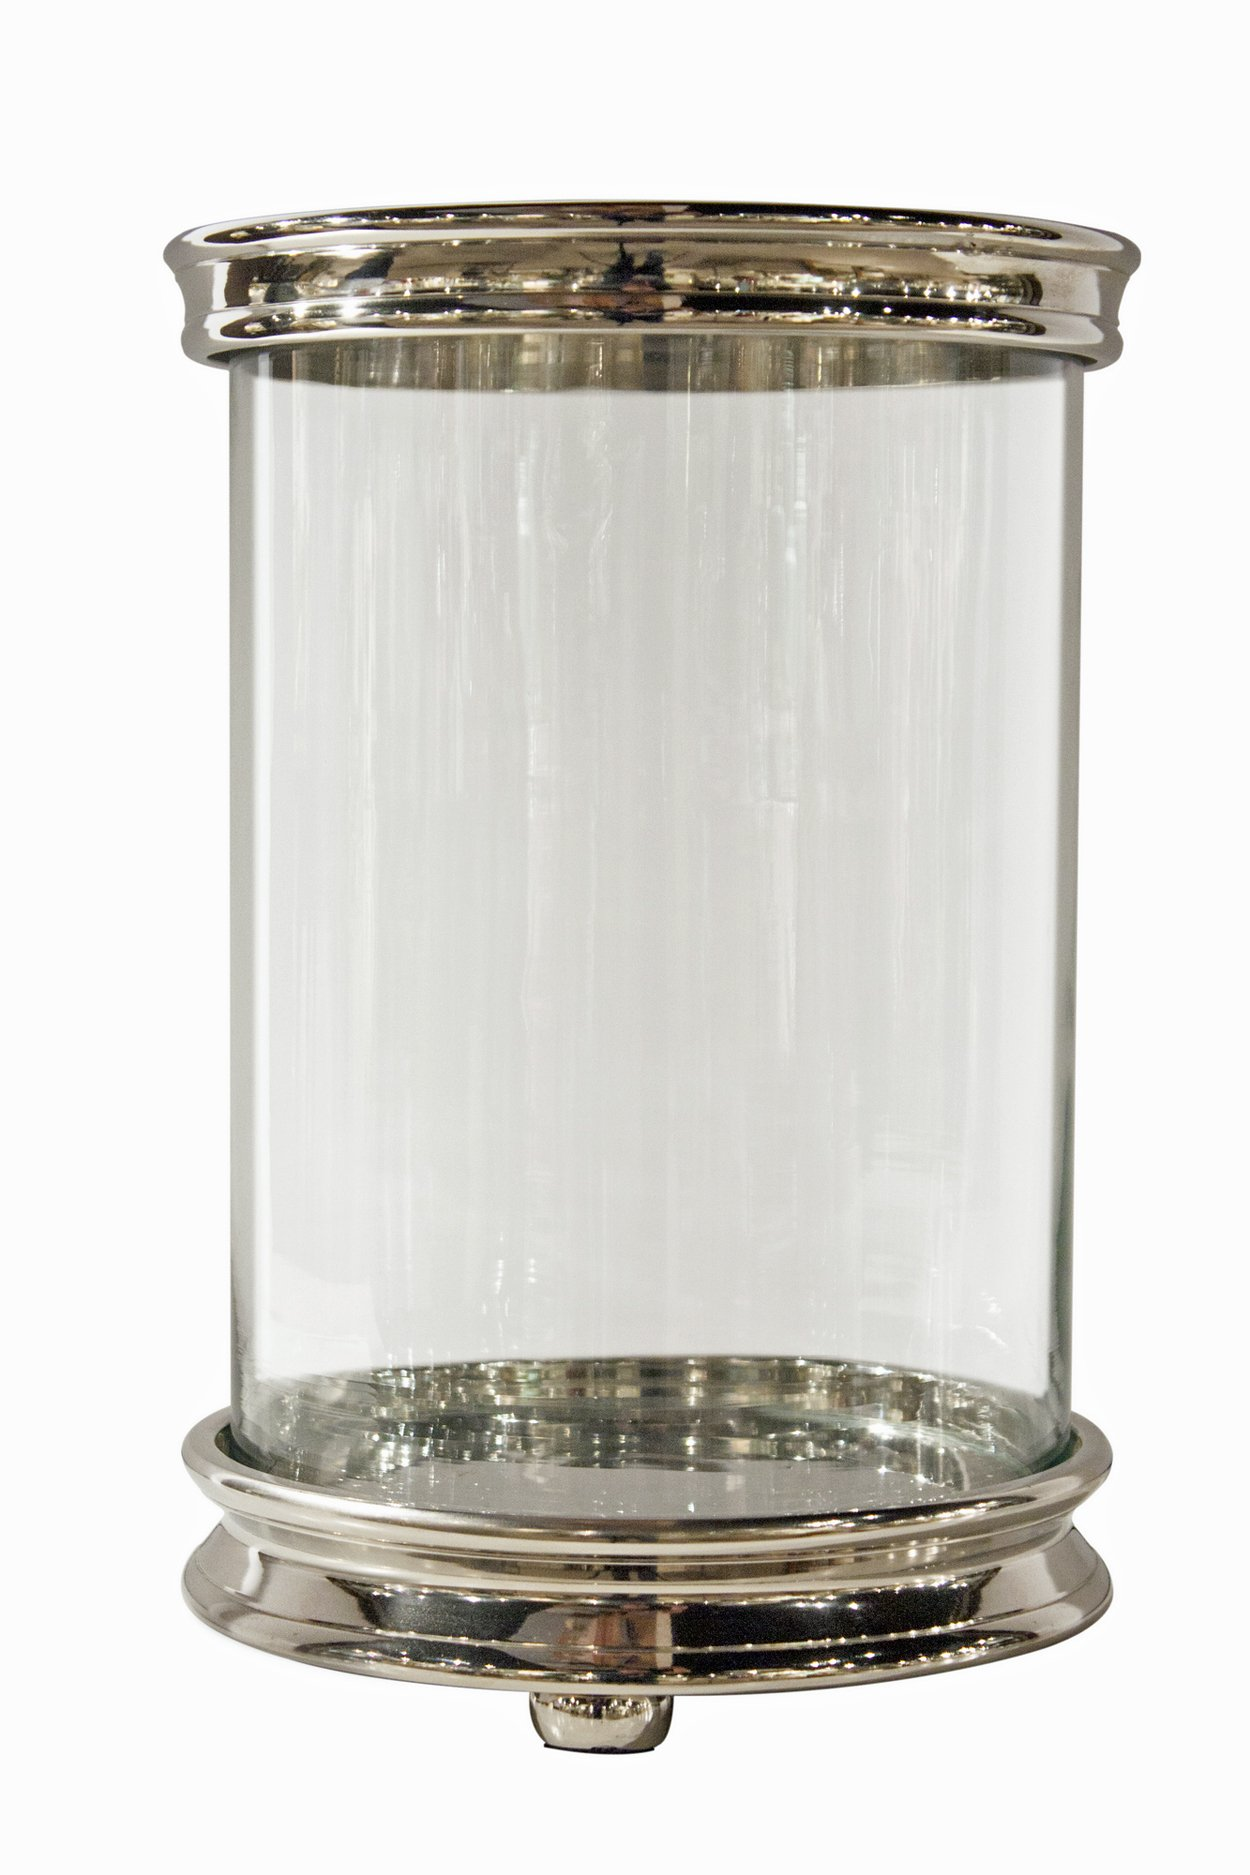 Hurricanes - ''Nob Hill'' Cylinder Hurricane Candle Holder - Nickel Finish Pillar Candle Holder